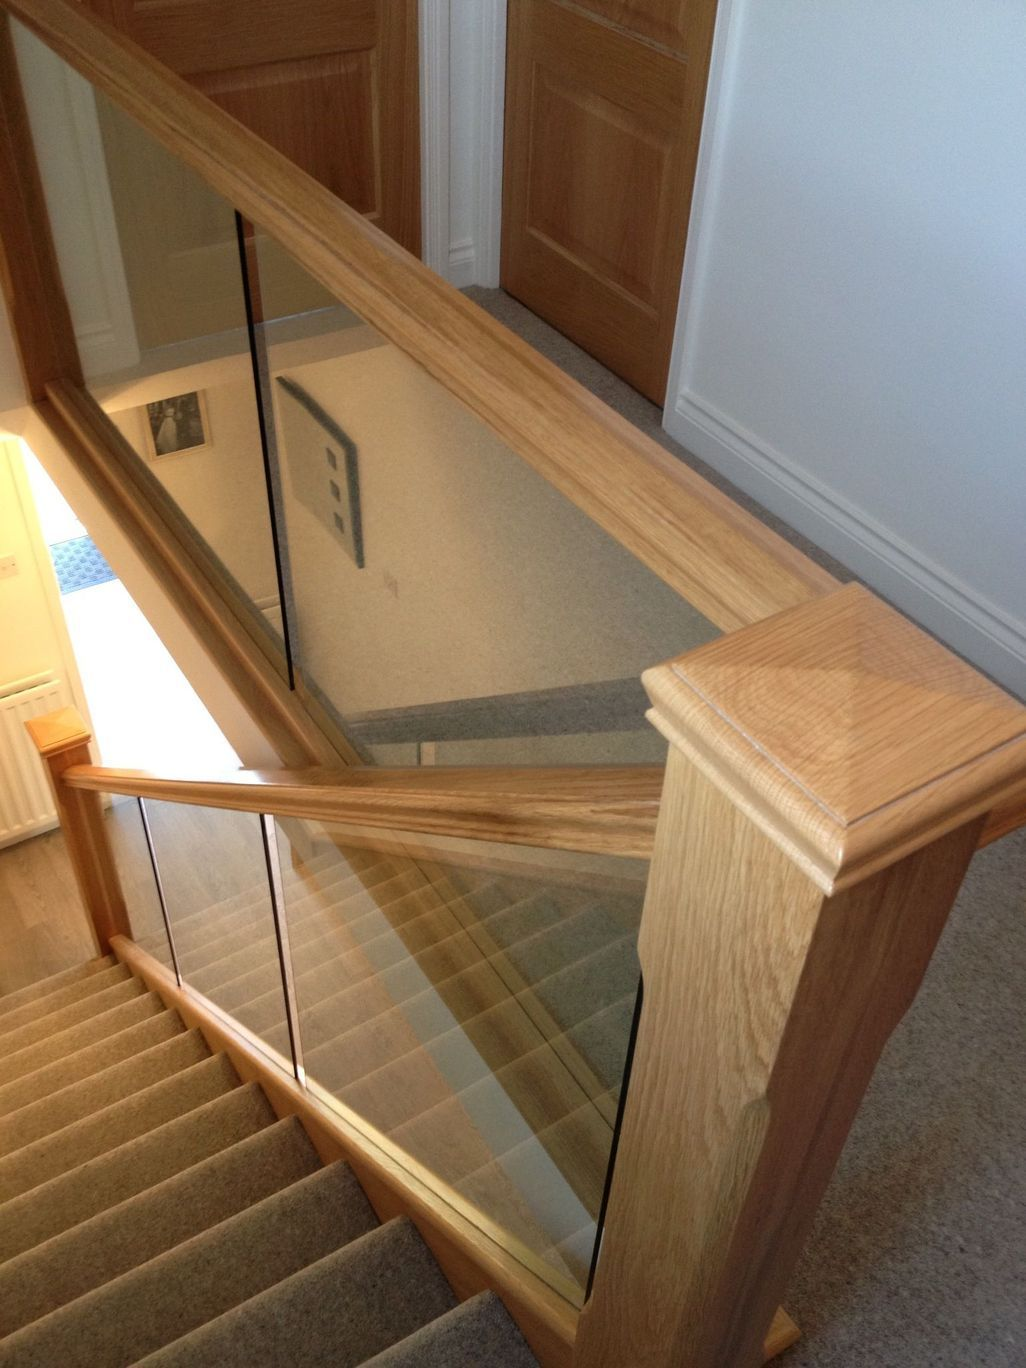 29 Basement Stairs Ideas Basementstairs Finished Basement Ideas Staircase Remodel Under The Stairs Ideas O Home Stairs Design House Stairs Staircase Design